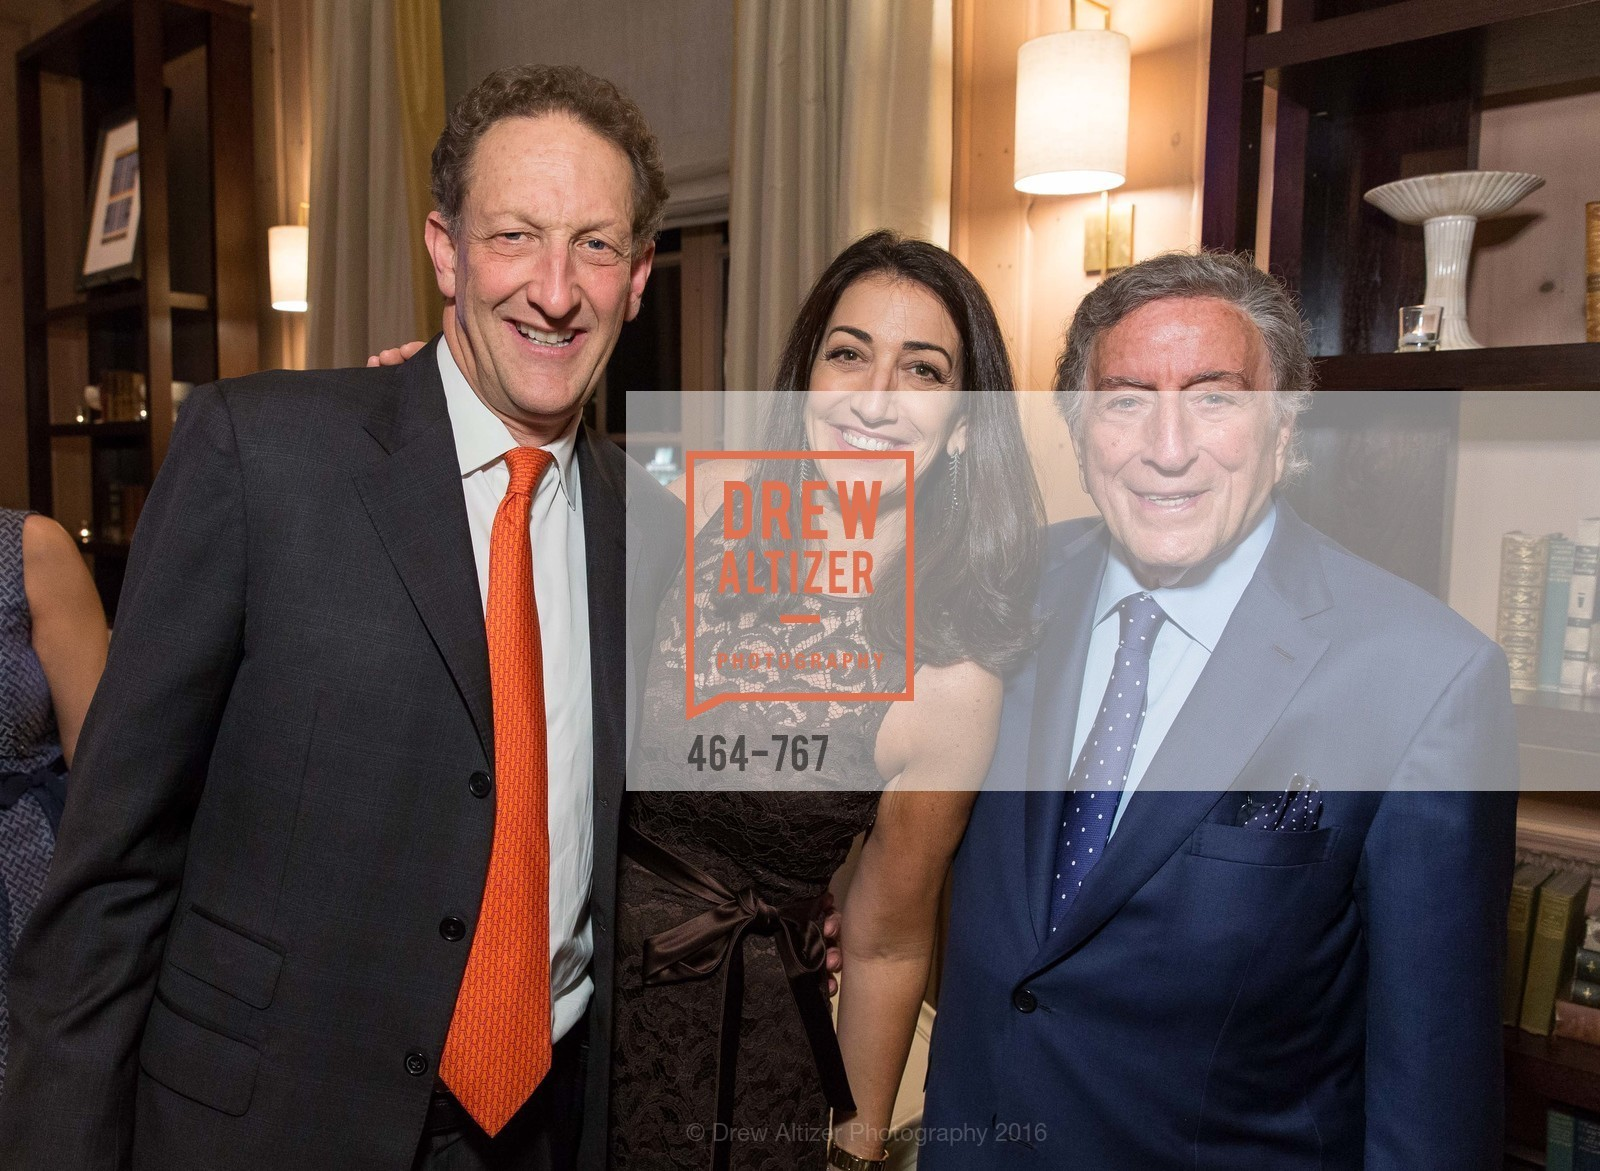 Larry Baer, Pam Baer, Tony Bennett, A Special Reception with Tony Bennett, The Fairmont, San Francisco, The Penthouse Suite, January 26th, 2016,Drew Altizer, Drew Altizer Photography, full-service event agency, private events, San Francisco photographer, photographer California